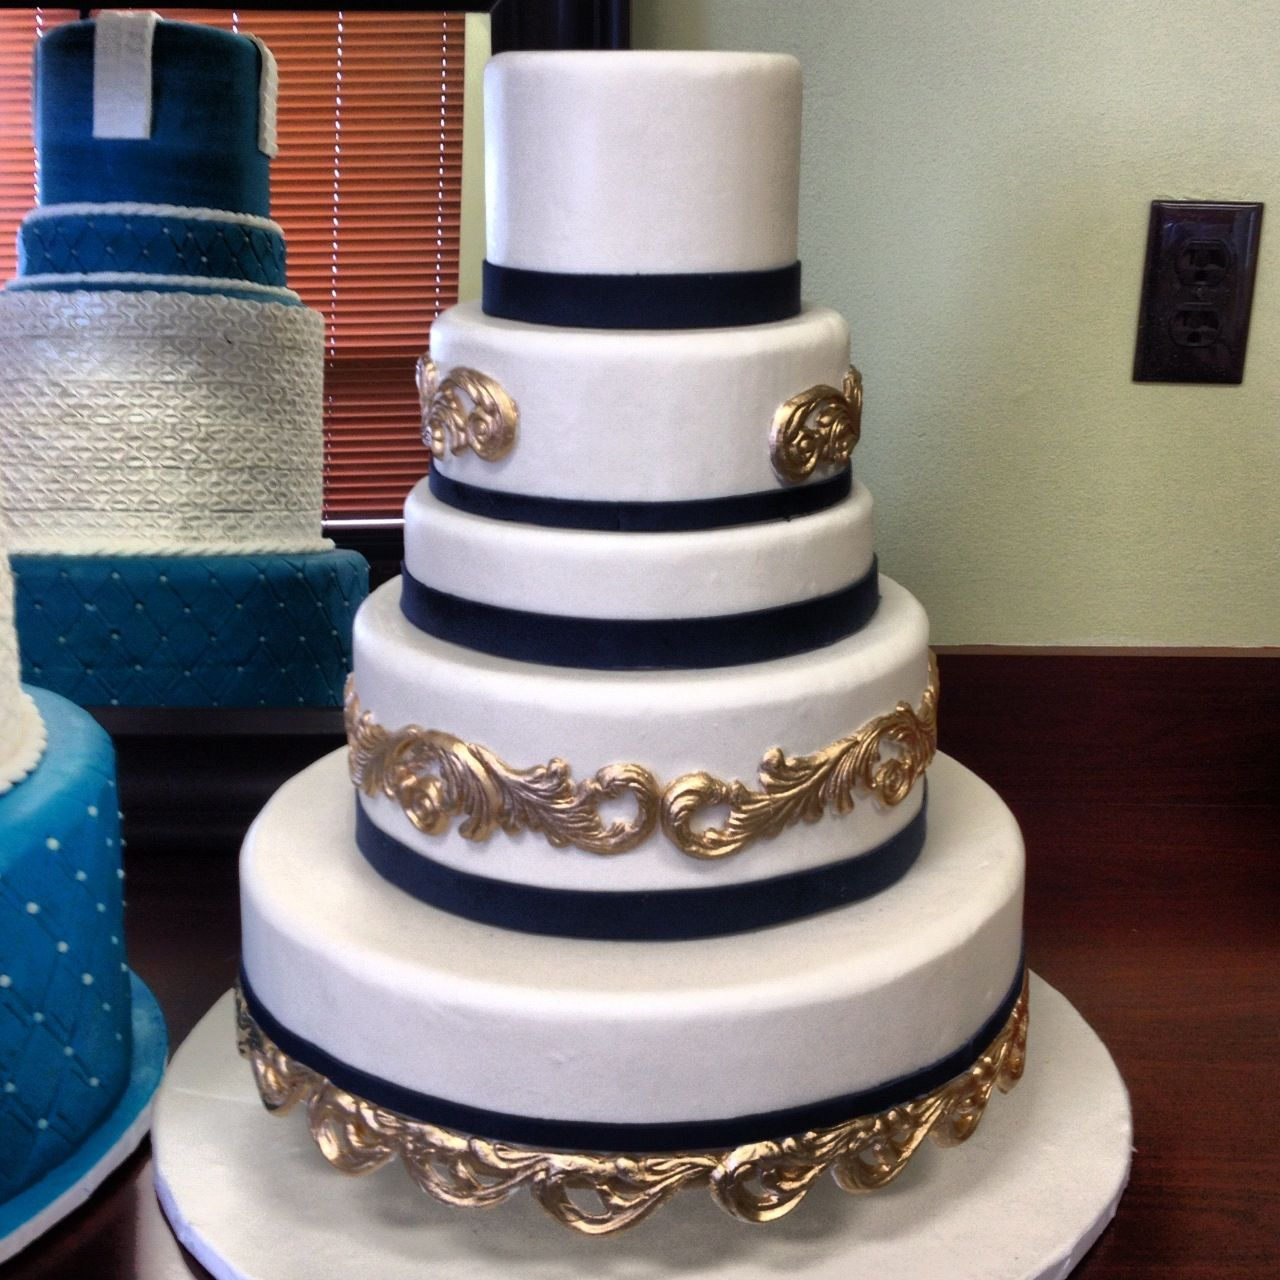 blue gold wedding cakes i the navy blue and gold on this cake fondarific 11987